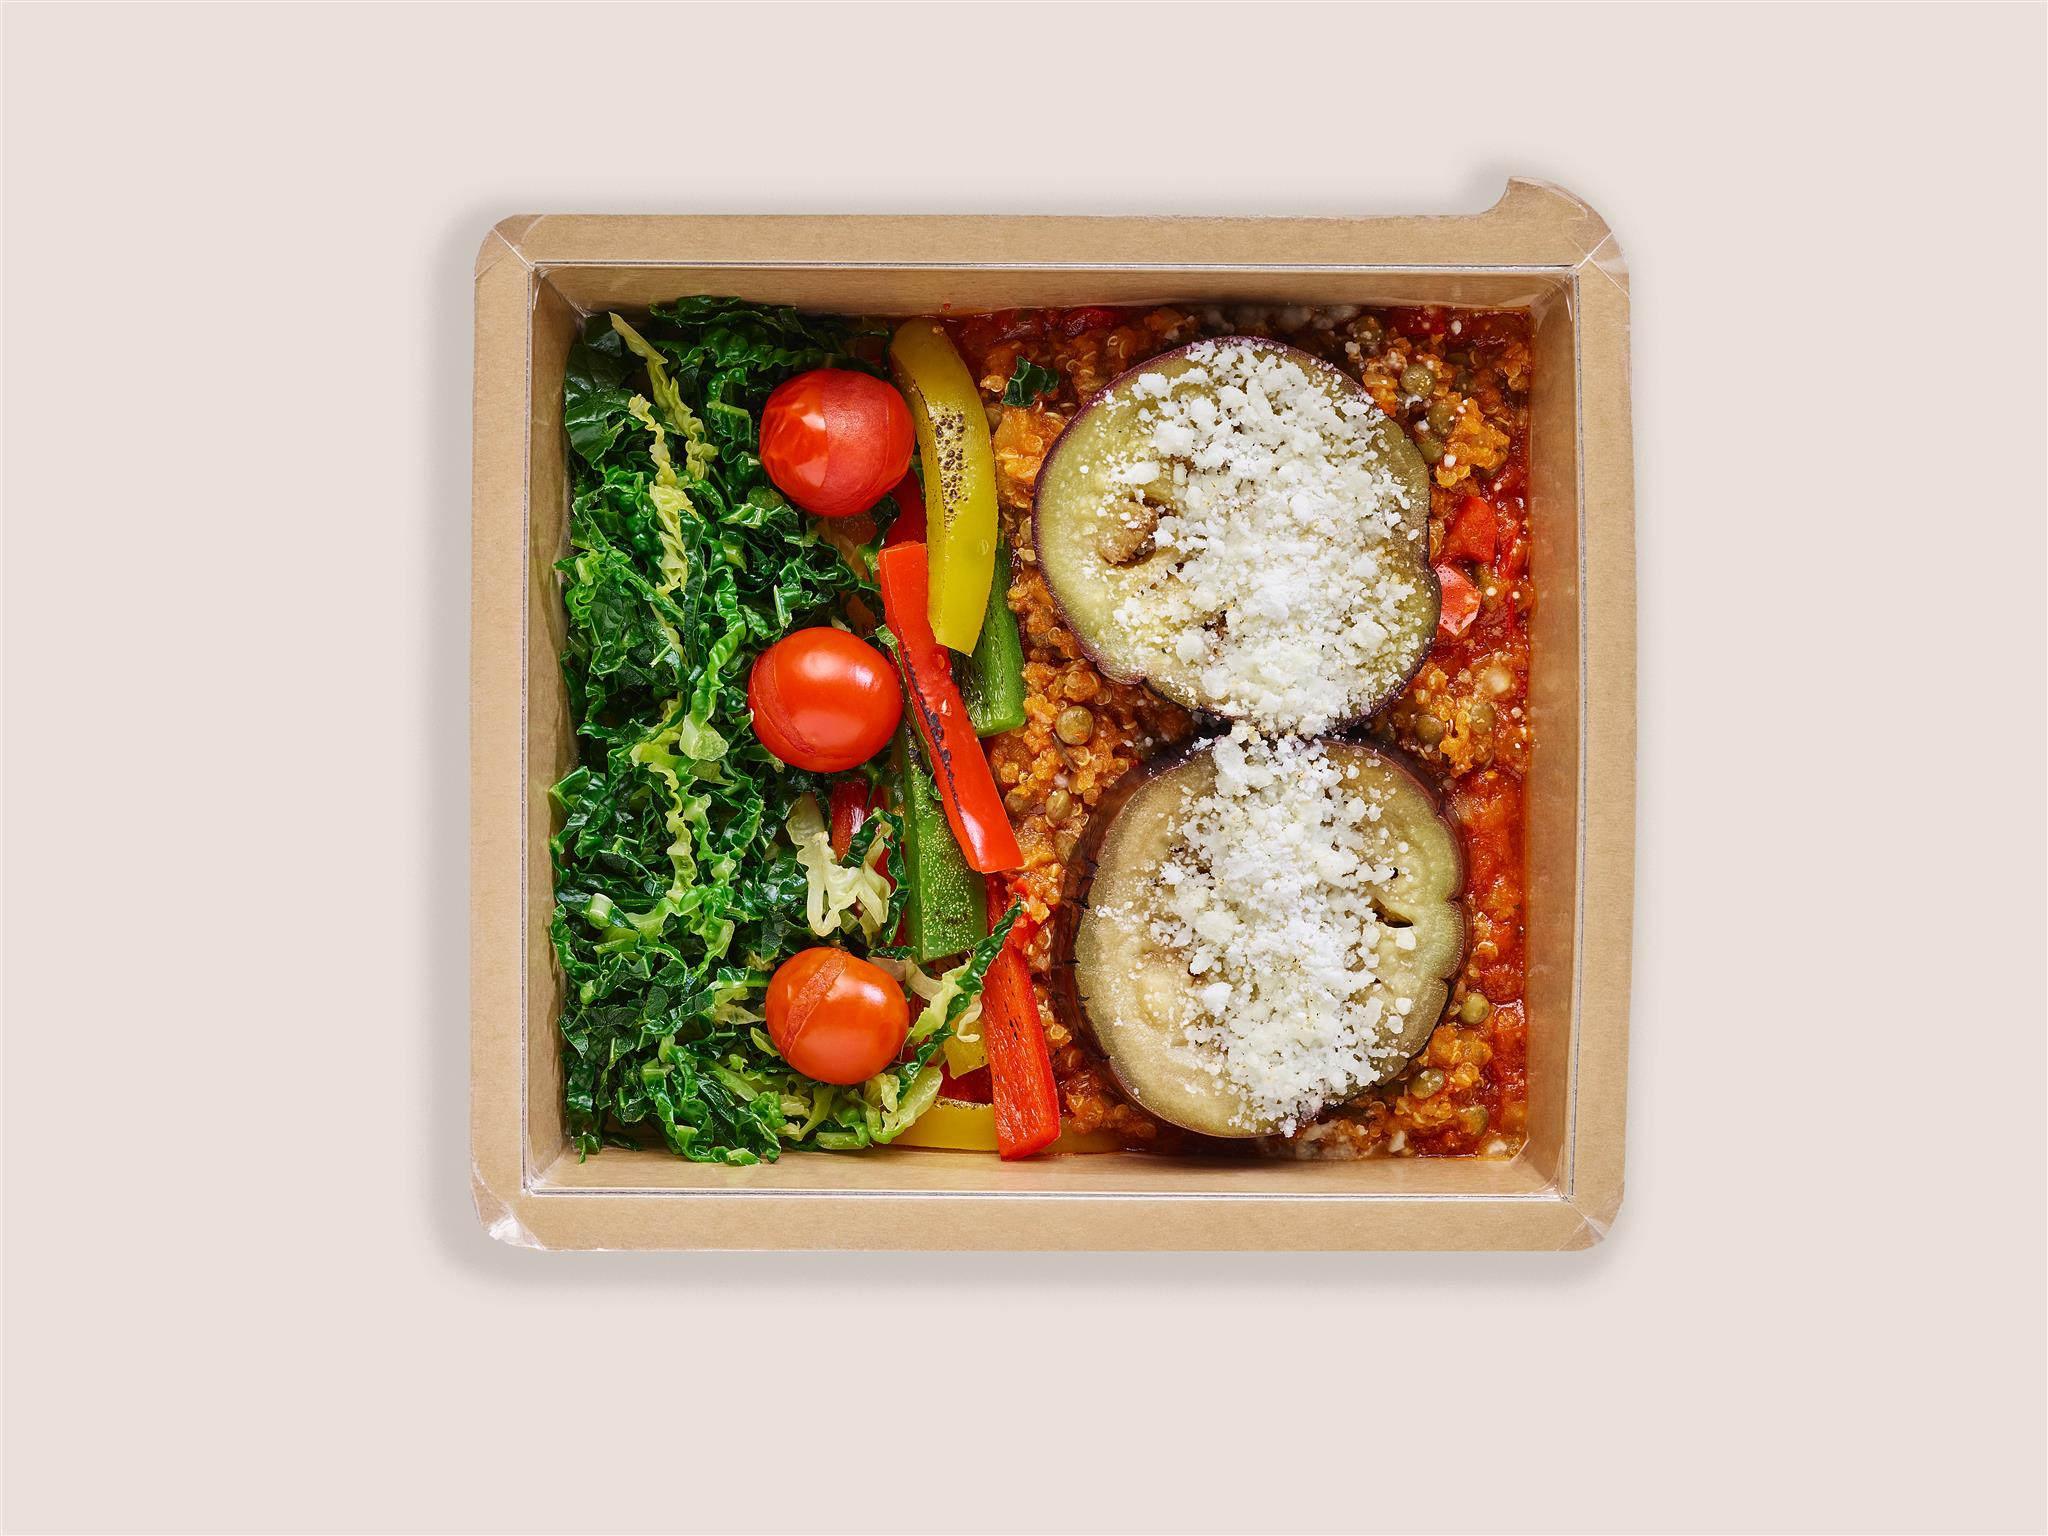 Lentil & Quinoa Moussaka with Savoy Cabbage